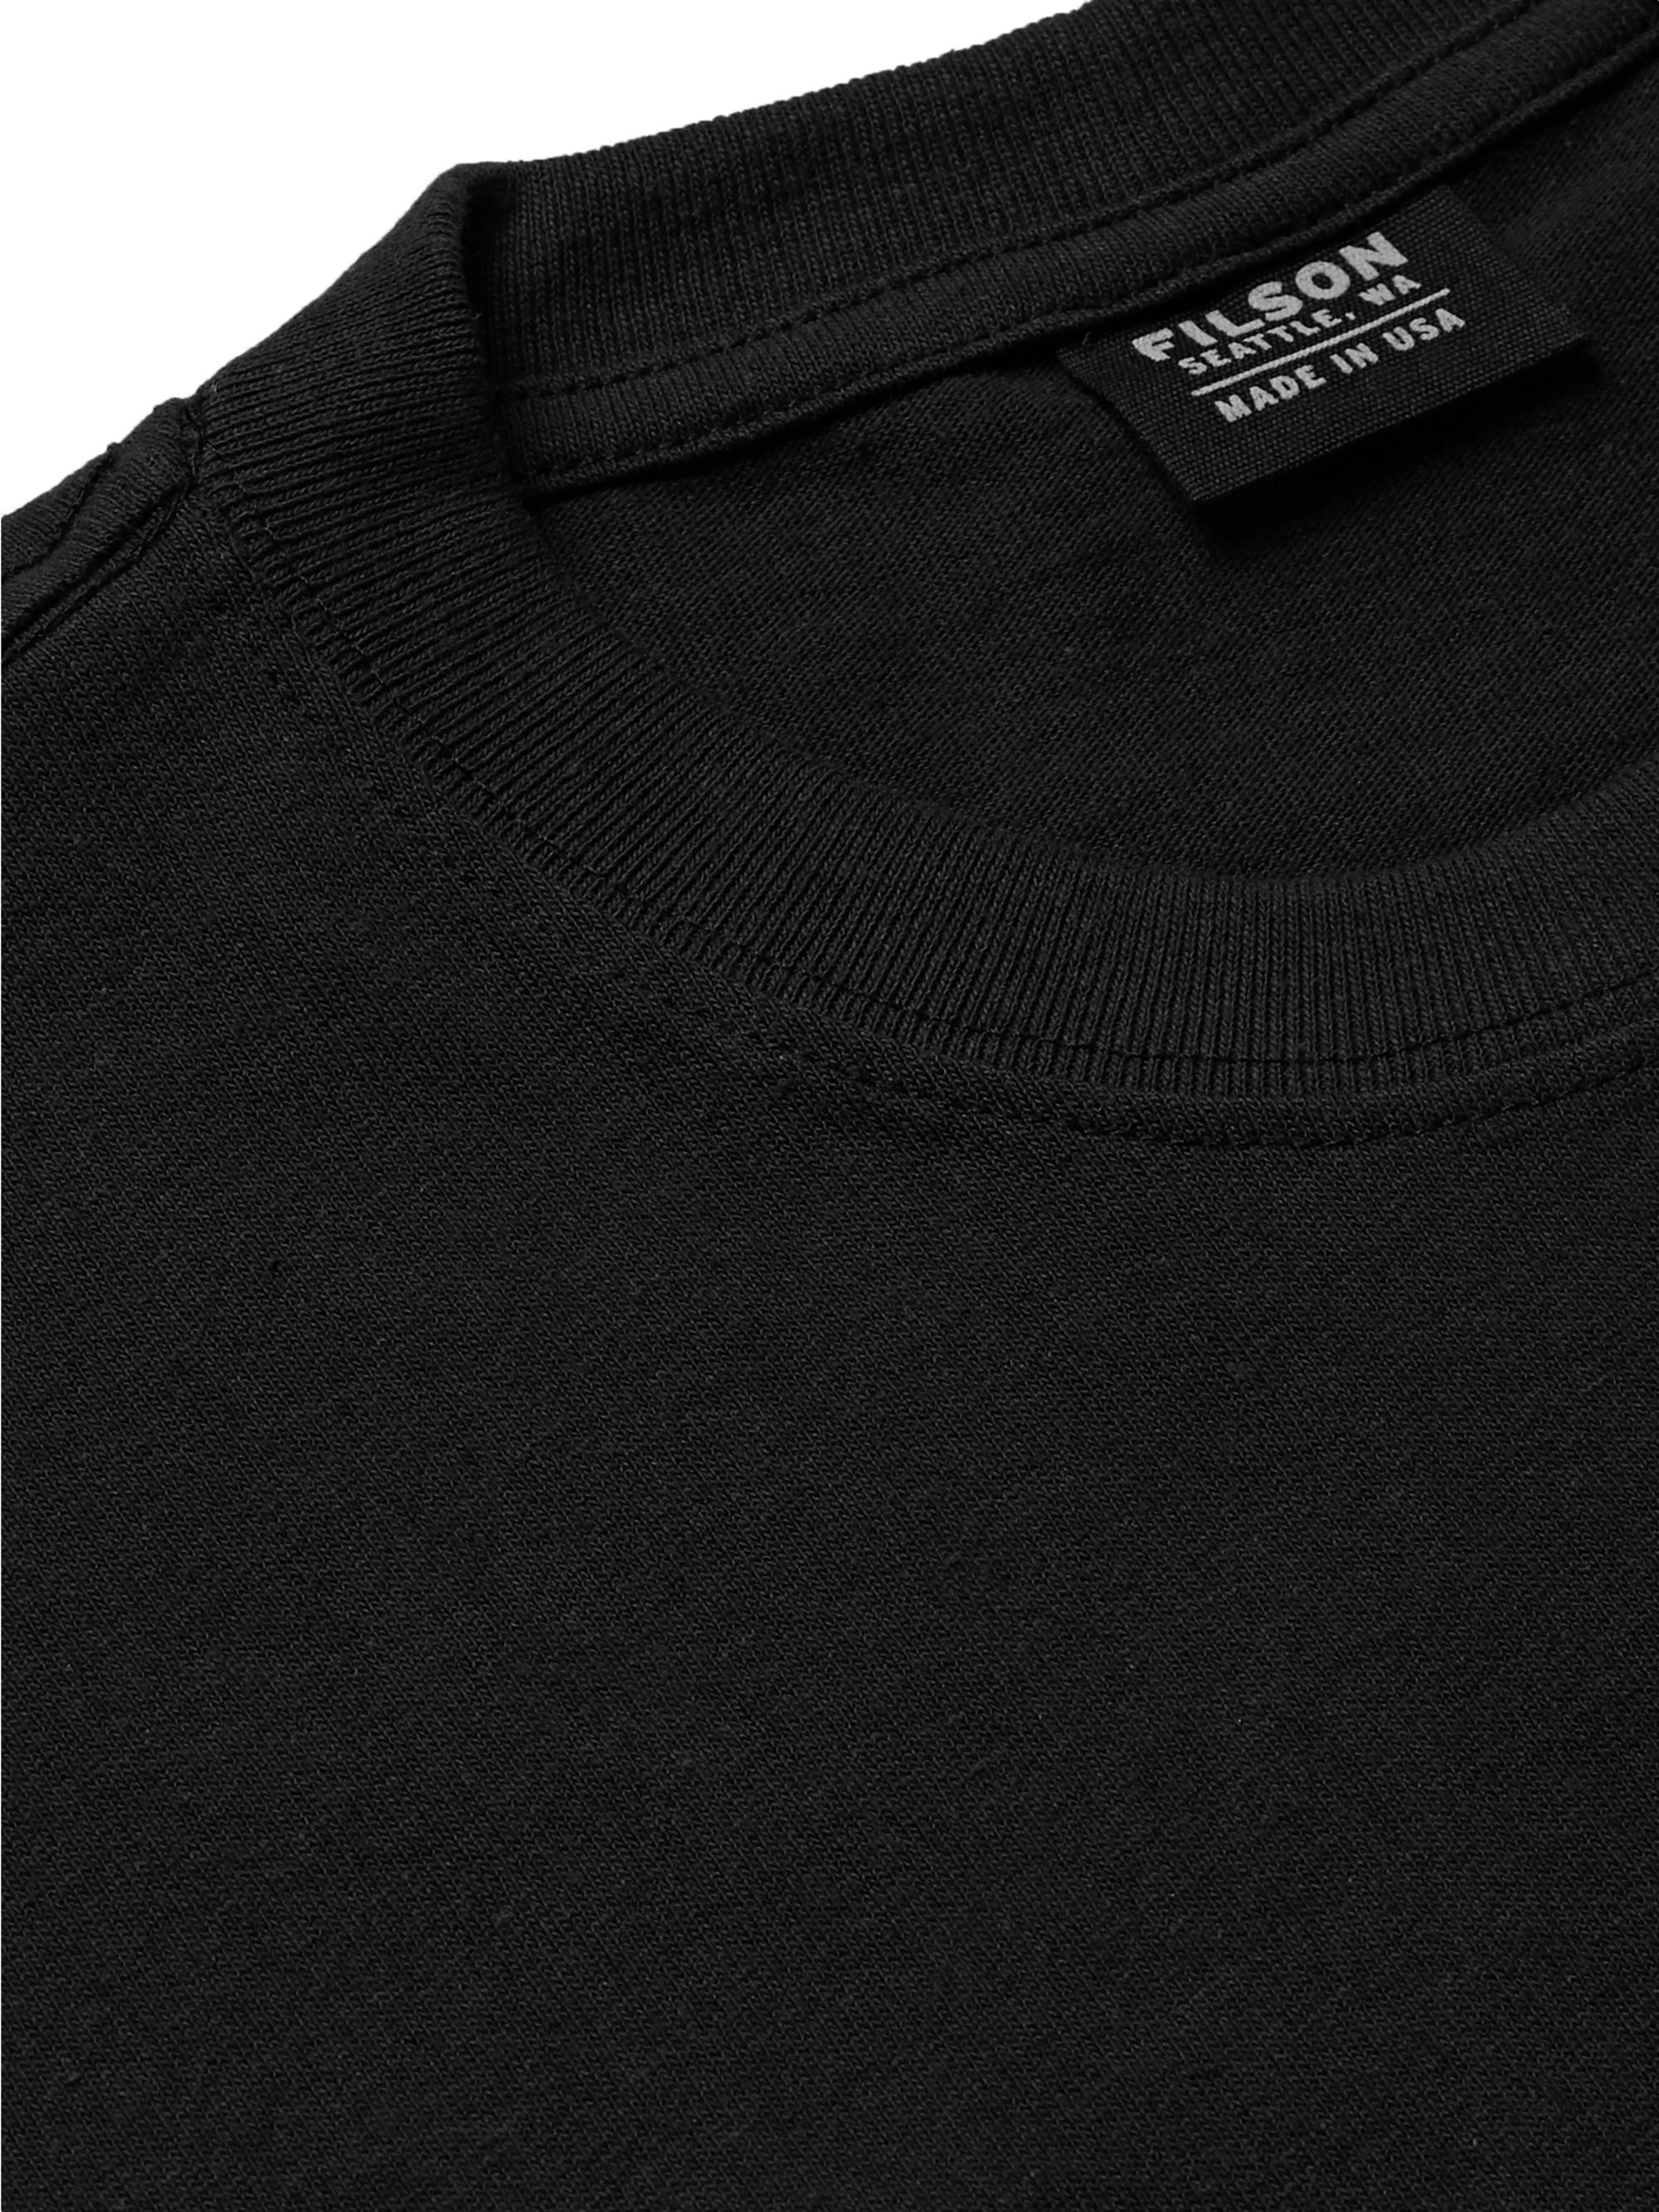 Filson Outfitter Printed Cotton-Jersey T-Shirt